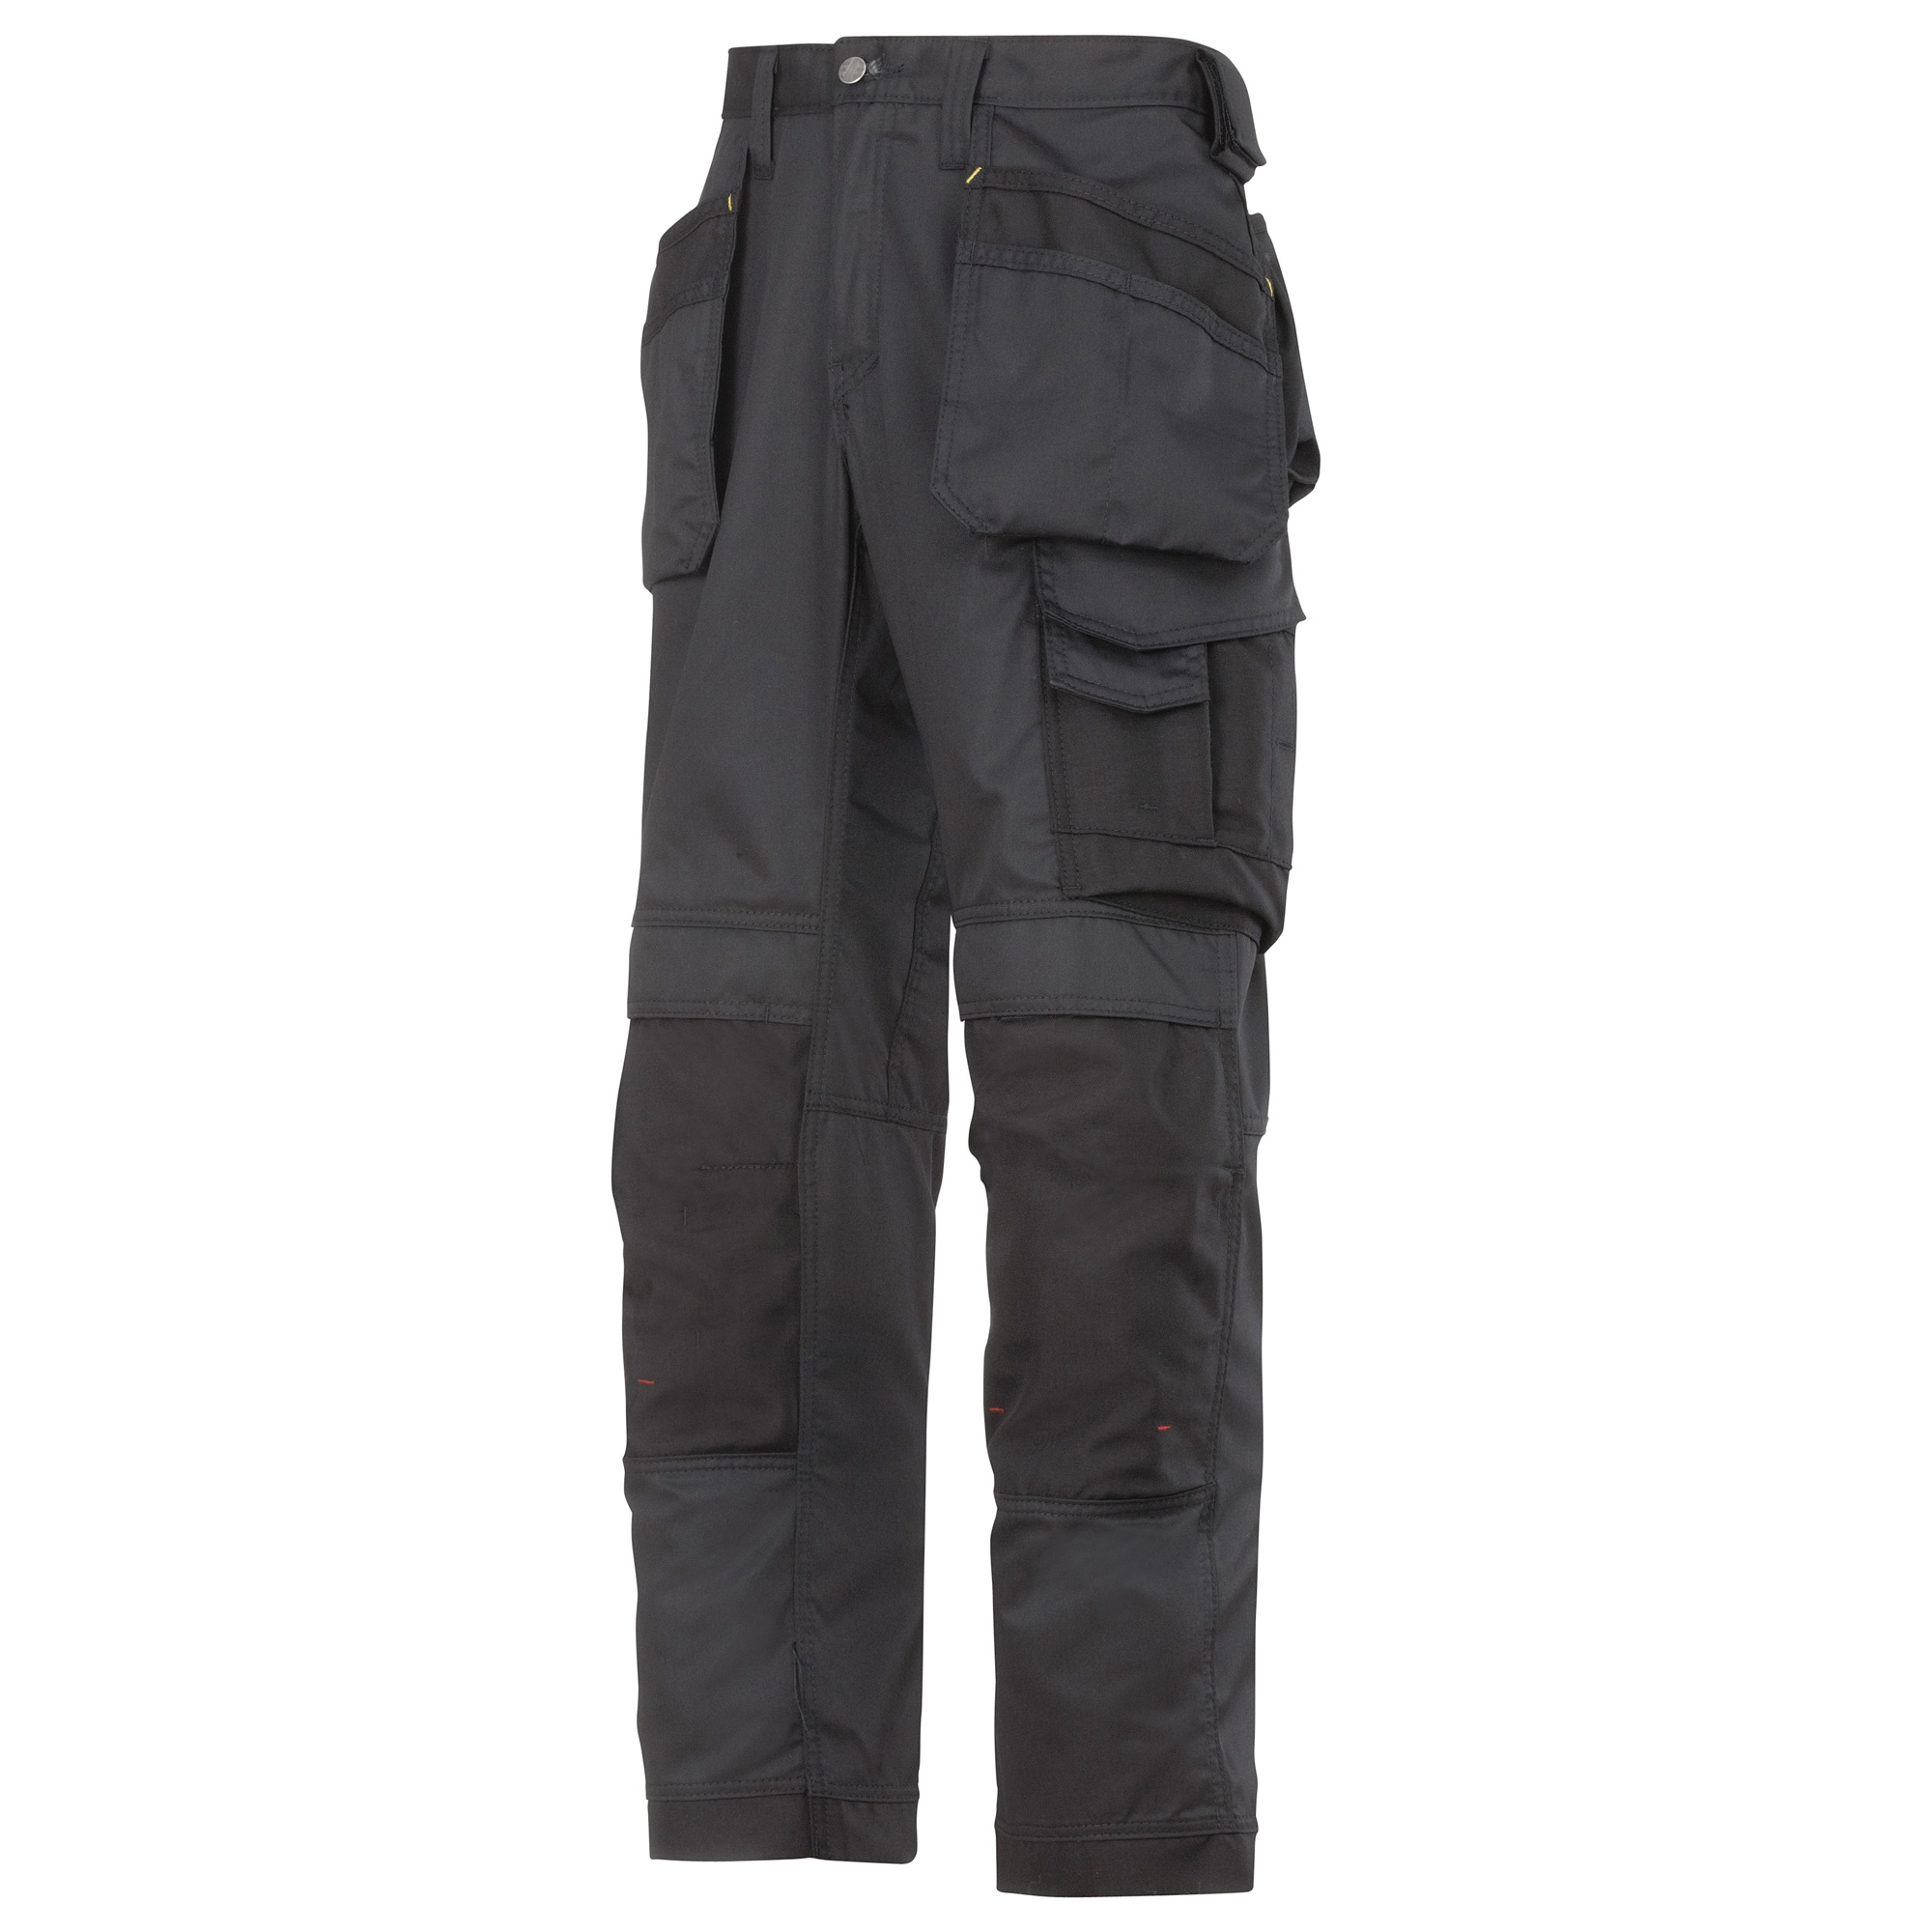 Snickers Mens Cooltwill Workwear Trousers / Pants (35S) (Black)